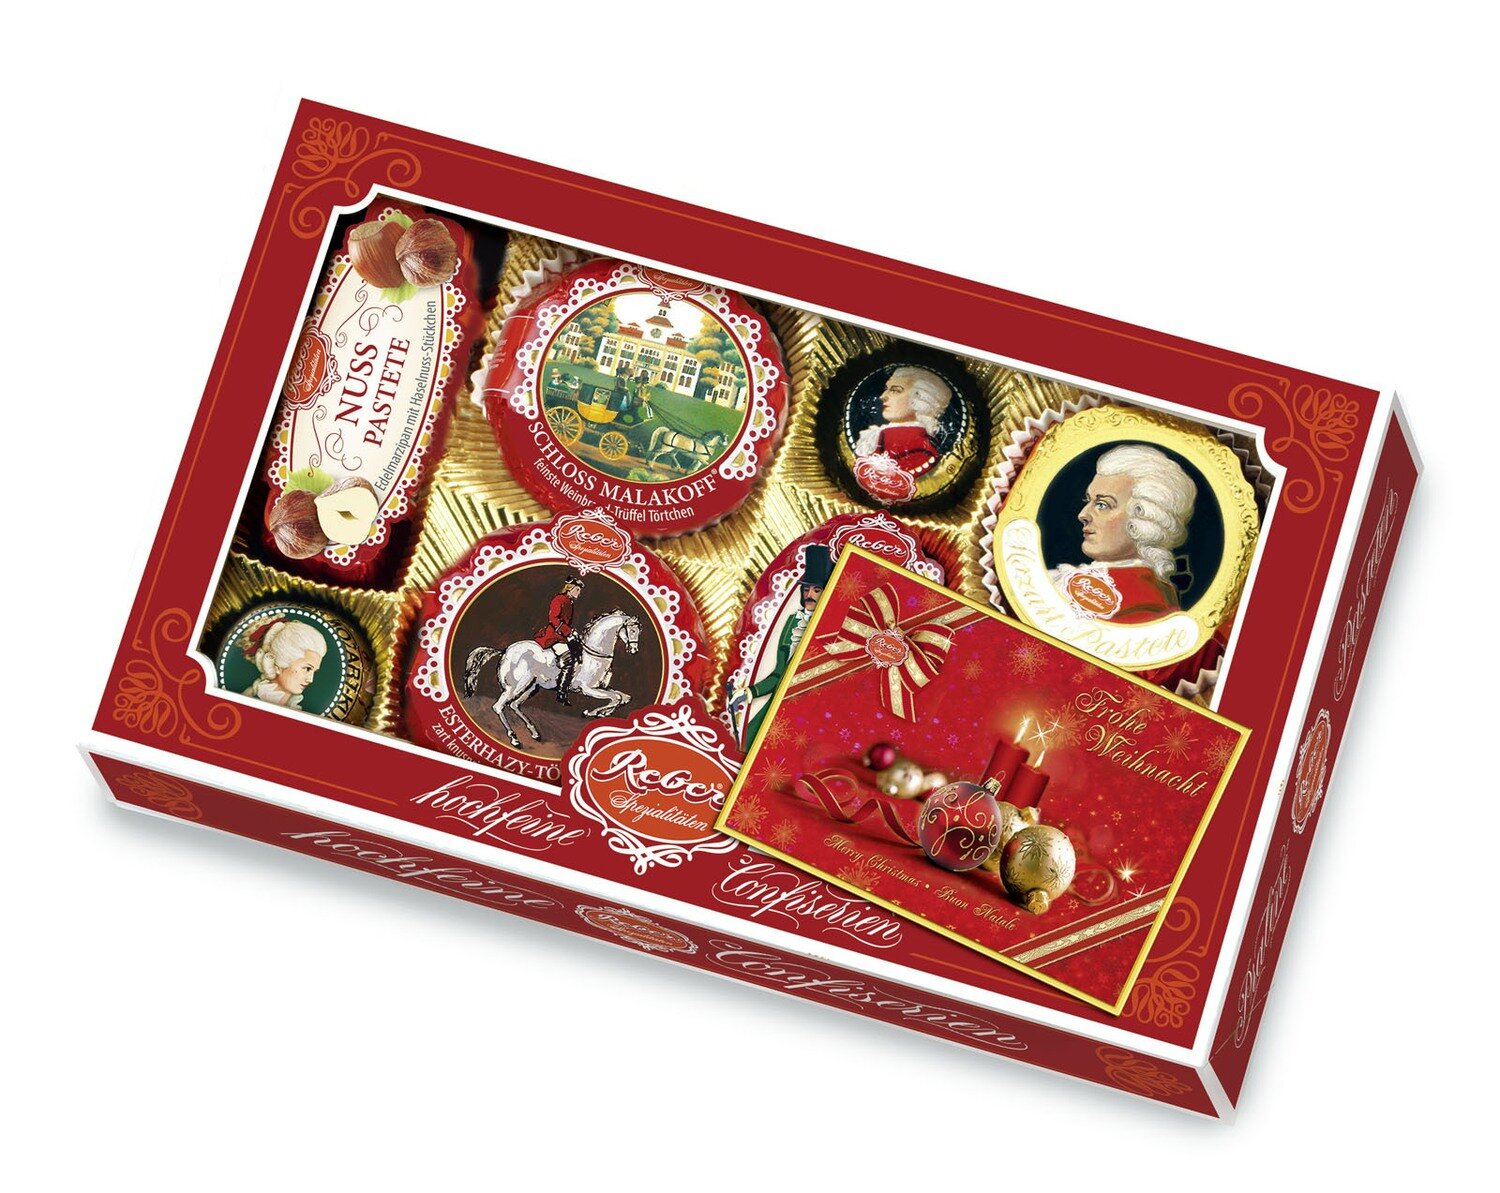 Reber Marzipan Specialty gift box with Christmas Card, 285g/10.1 Oz